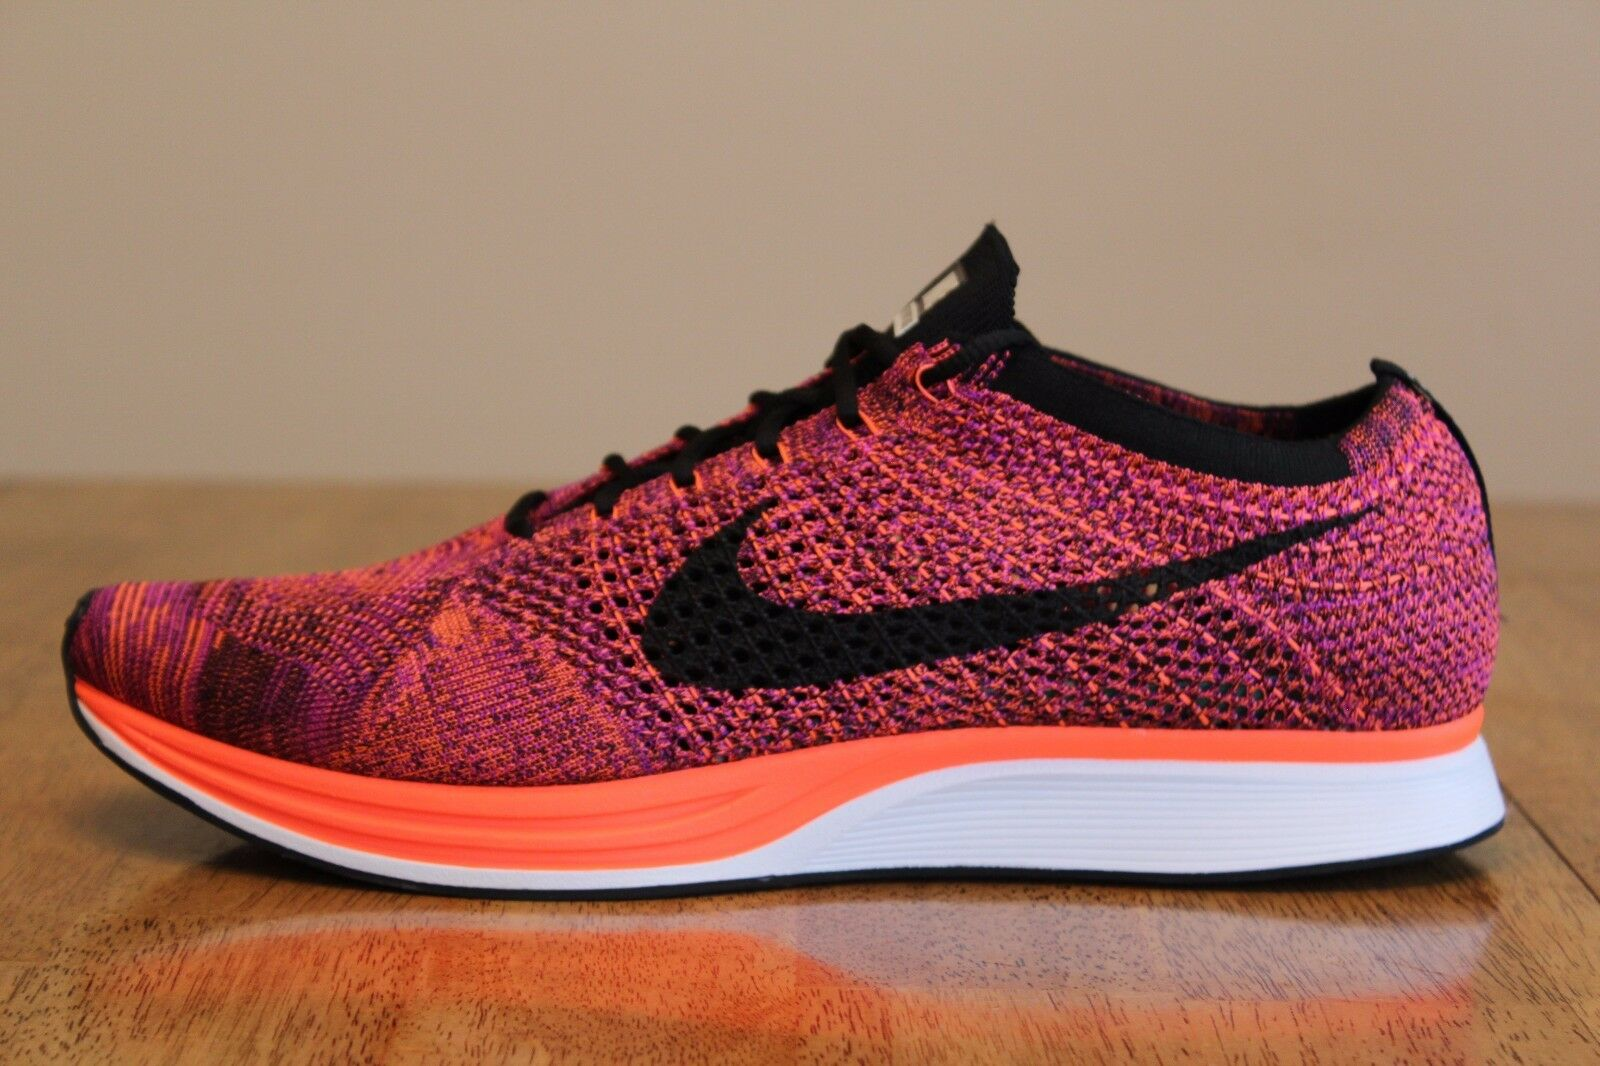 18 New Mens Nike Flyknit Racer 526628-008 Acai Berry Running Shoes Comfortable Comfortable and good-looking